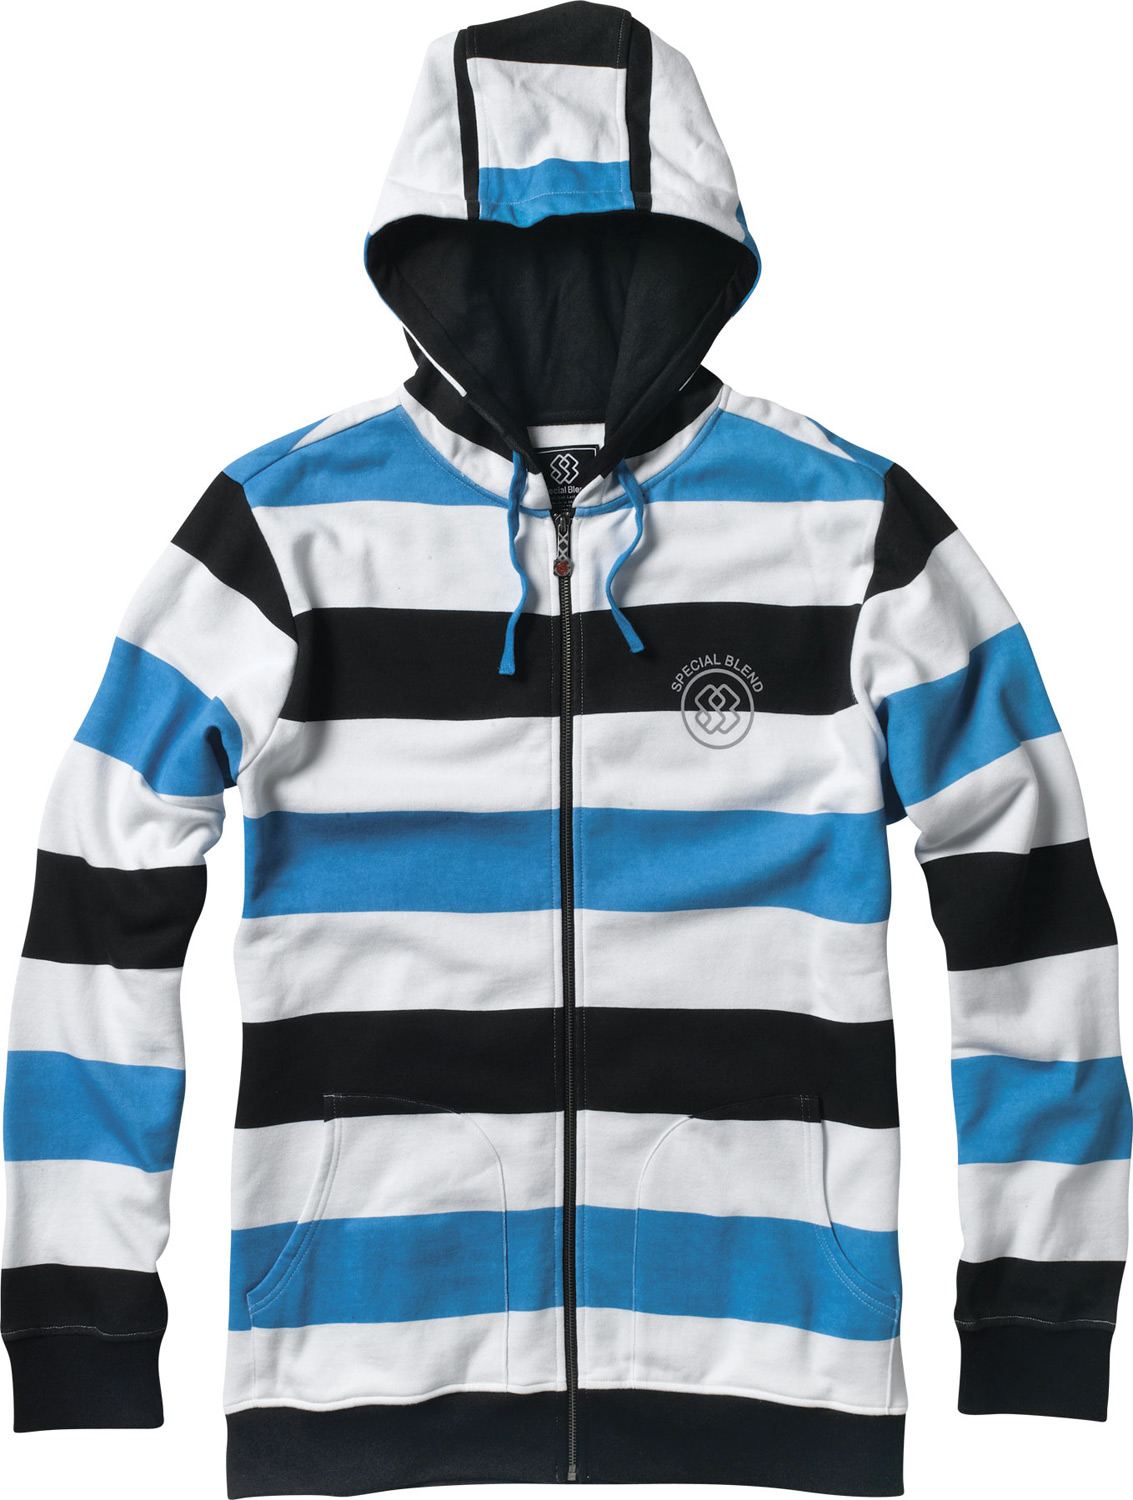 Key Features of the Special Blend Proof Zip Hoodie: Full zip hoodie with high neck collar Freedom fit 80% cotton 20% polyester, 300 Gms. Printed stripe fleece - $59.95